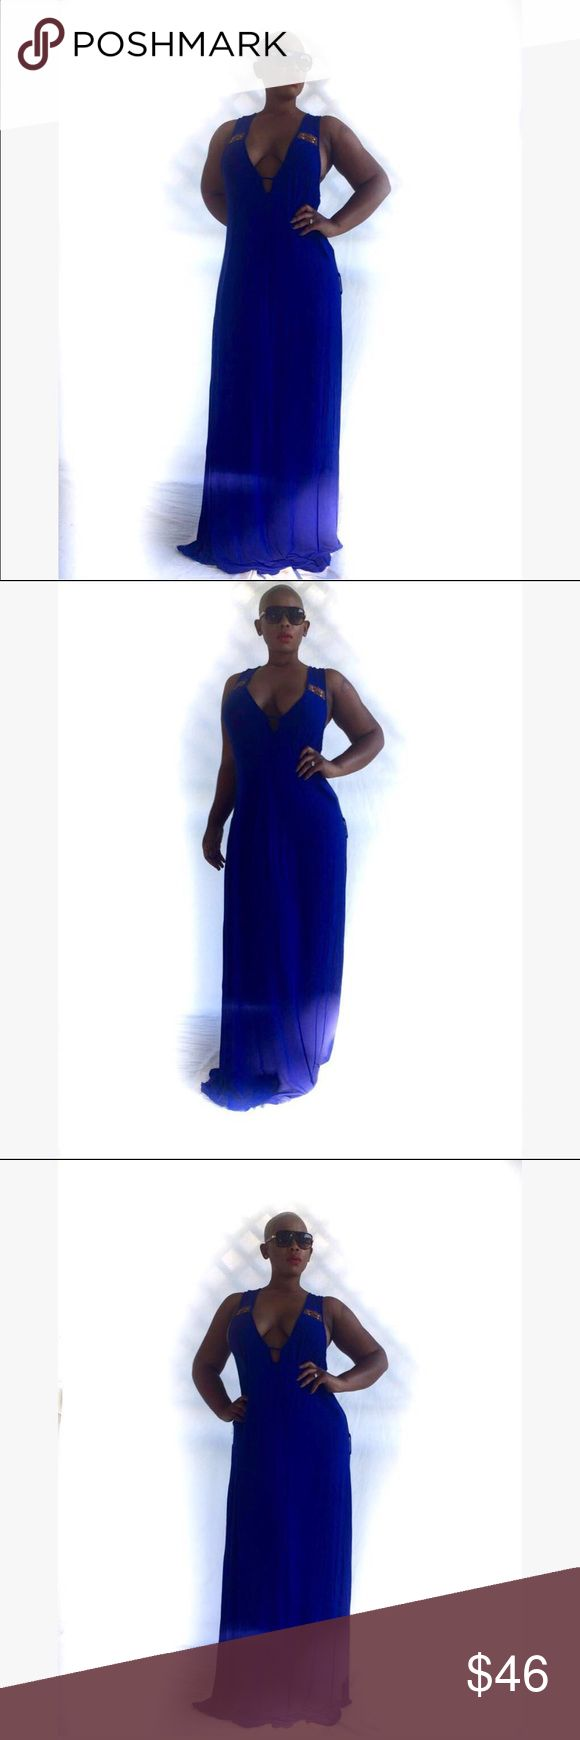 STUNNING EXTRA LONG MAXI DRESS❤️ This is the most COMFORTABLE, sexy, soft to the skin, extra long maxi dress you will ever own. Very easy to wear, this dress has beautiful details on the front and back. Overall a very stylish, EASY dress to wear. Within a matter of seconds you will look STUNNING when you put this dress on. Get the style💋 Baby Phat Dresses